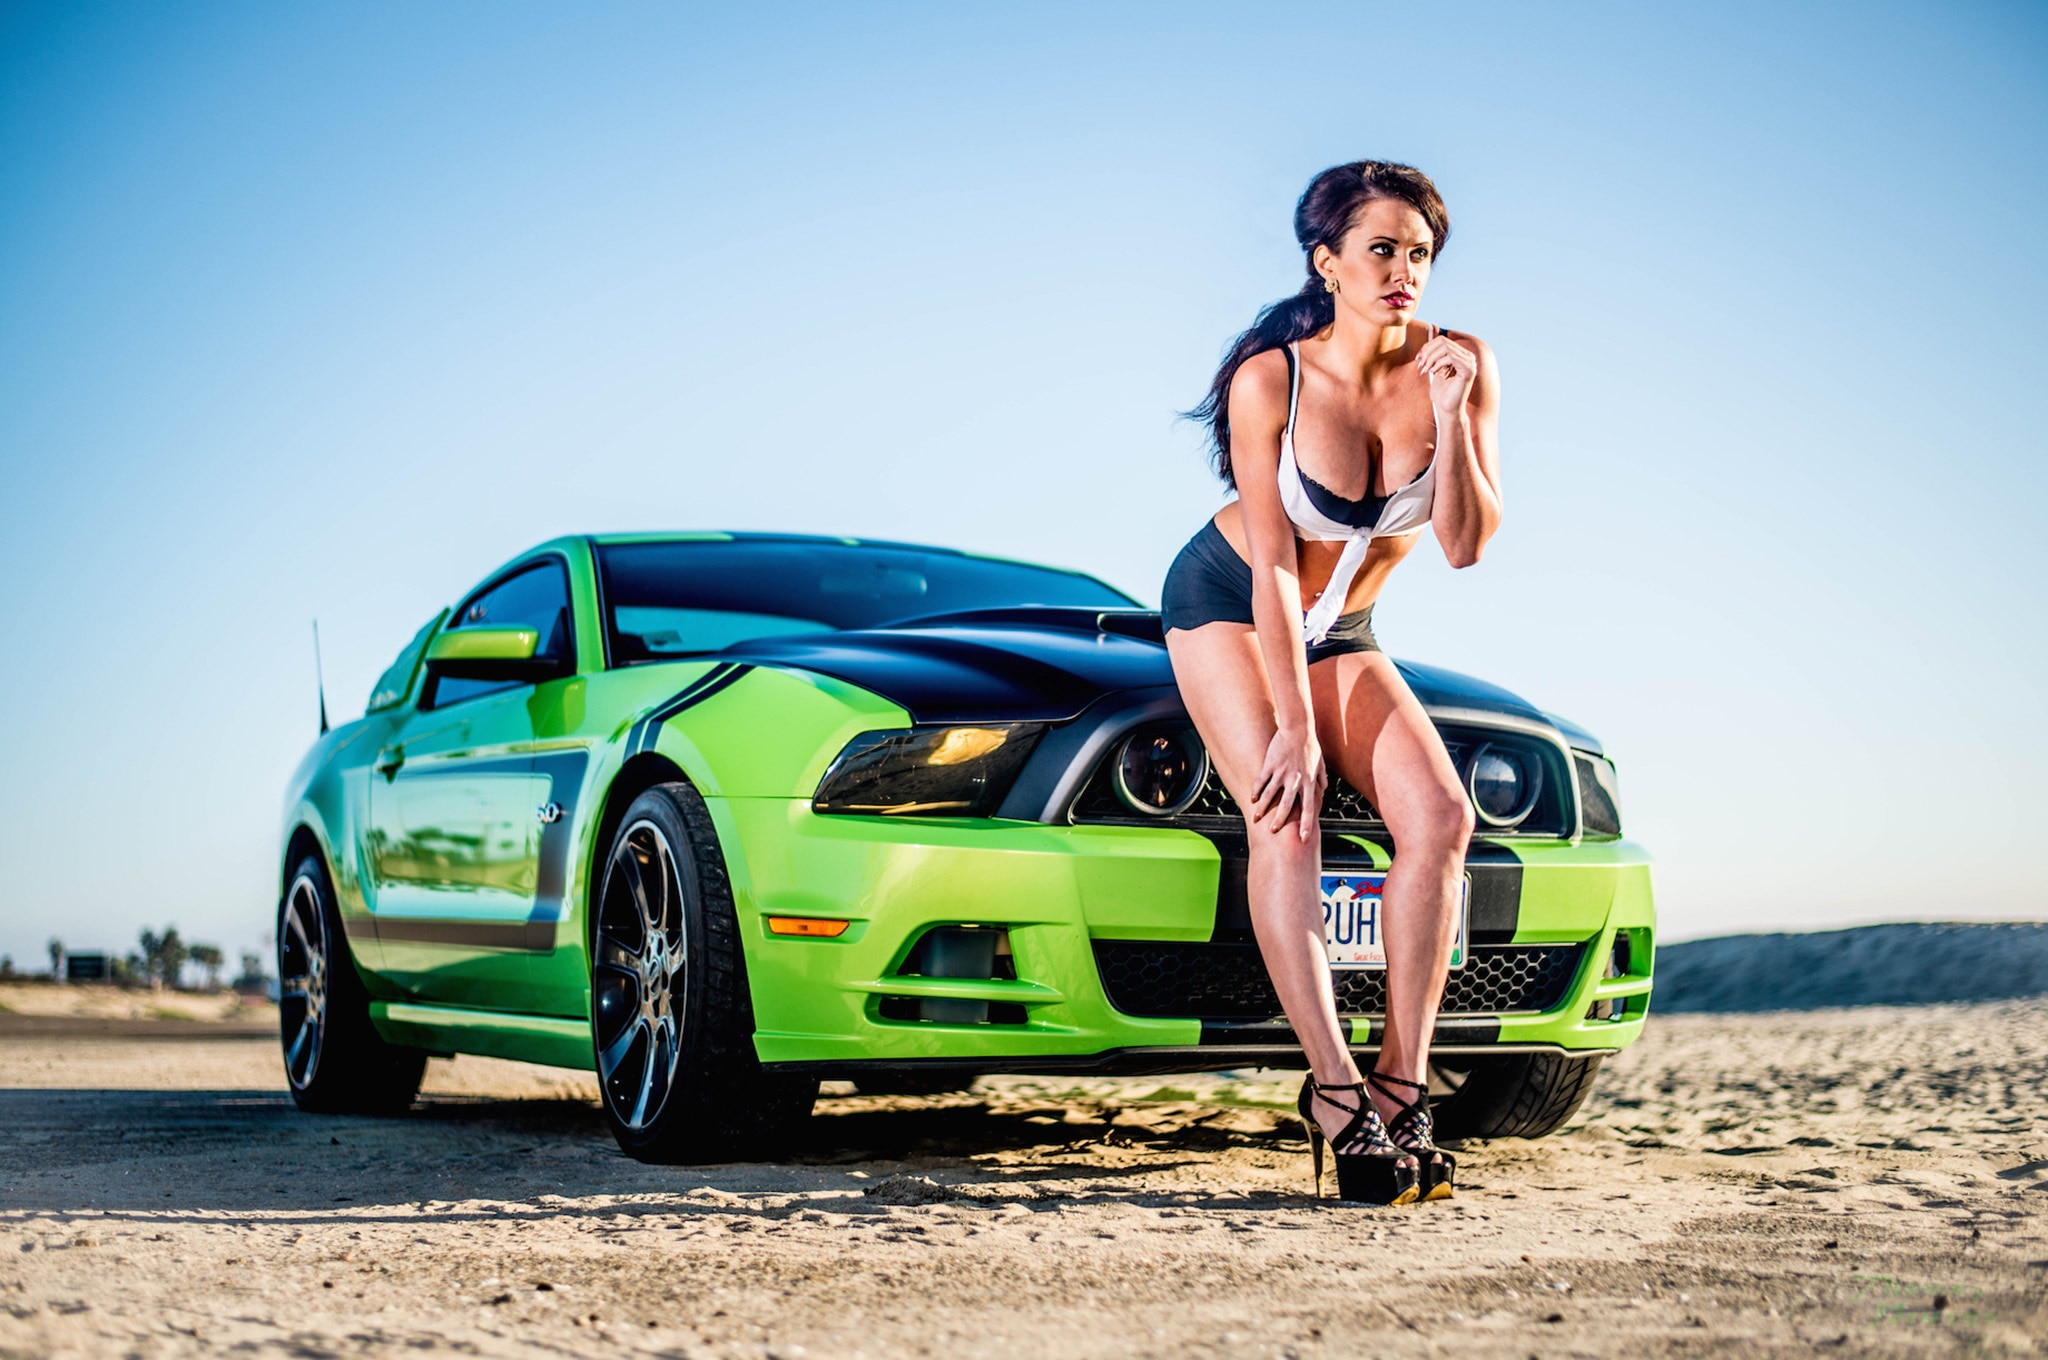 2013 Mustang Gt Devin Bagley Mustang Babe Of The Month 06